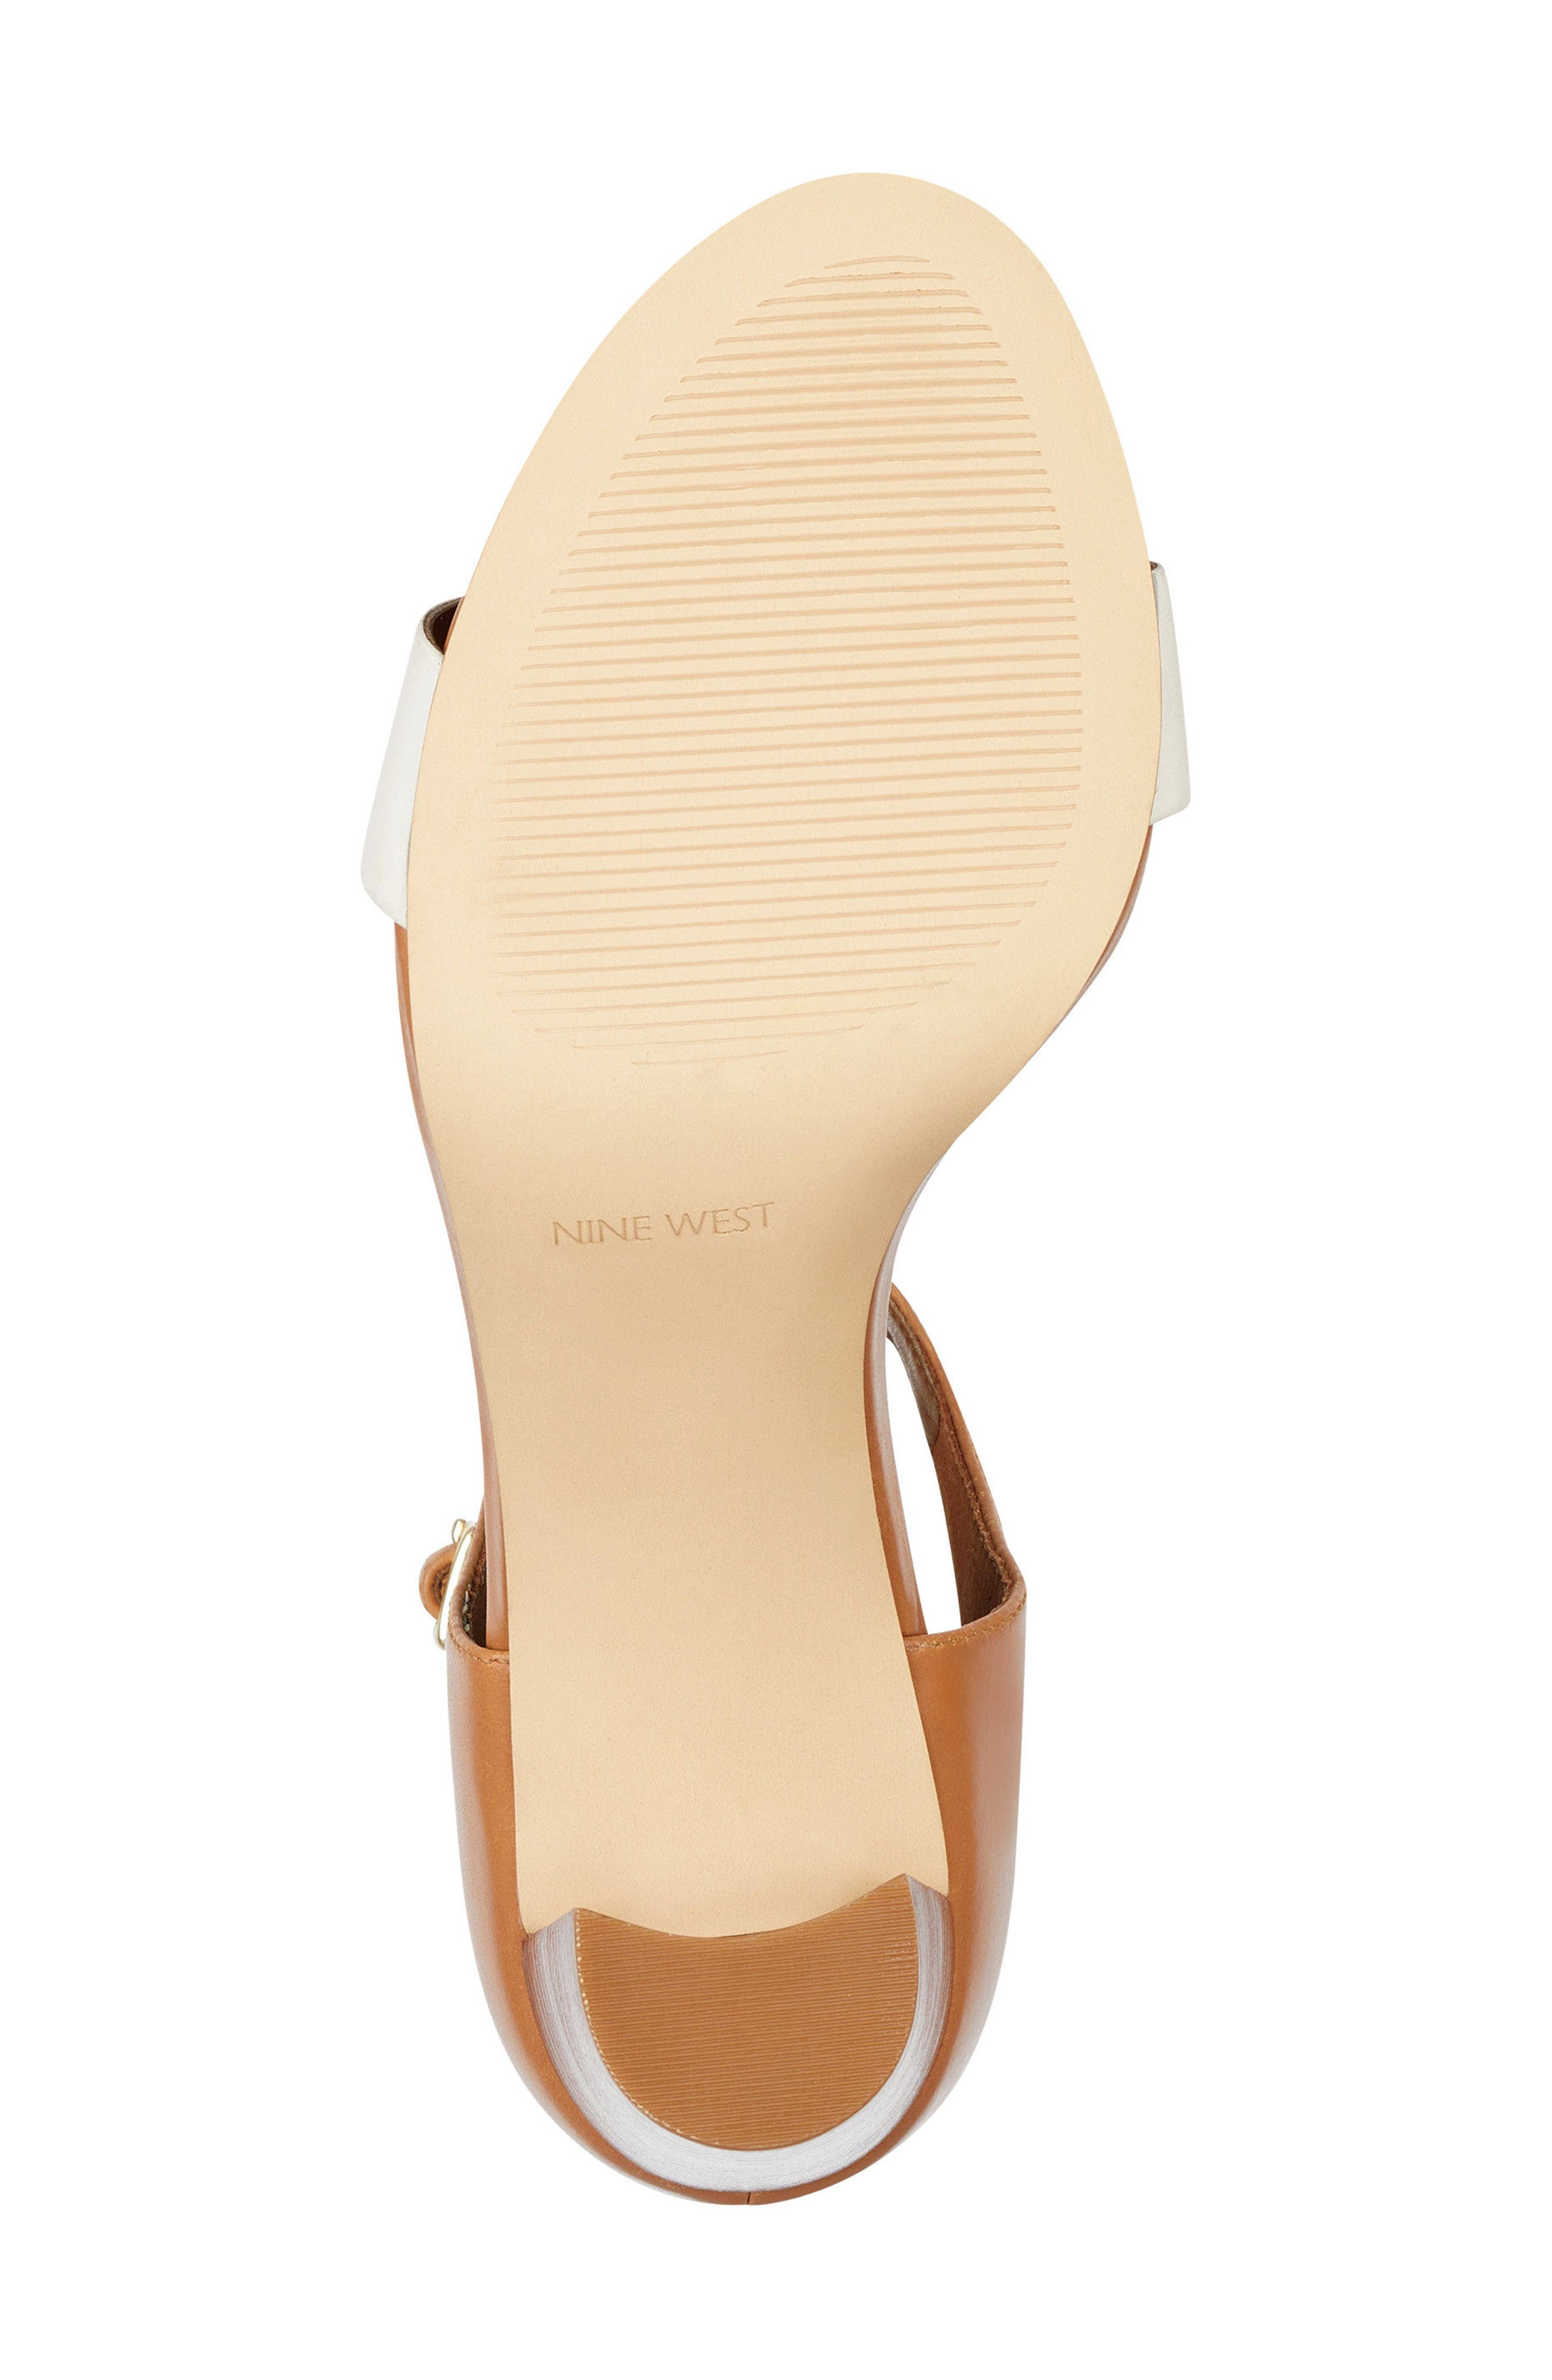 Nunzaya Ankle Strap Sandal,                             Alternate thumbnail 6, color,                             OFF WHITE/ NATURAL LEATHER